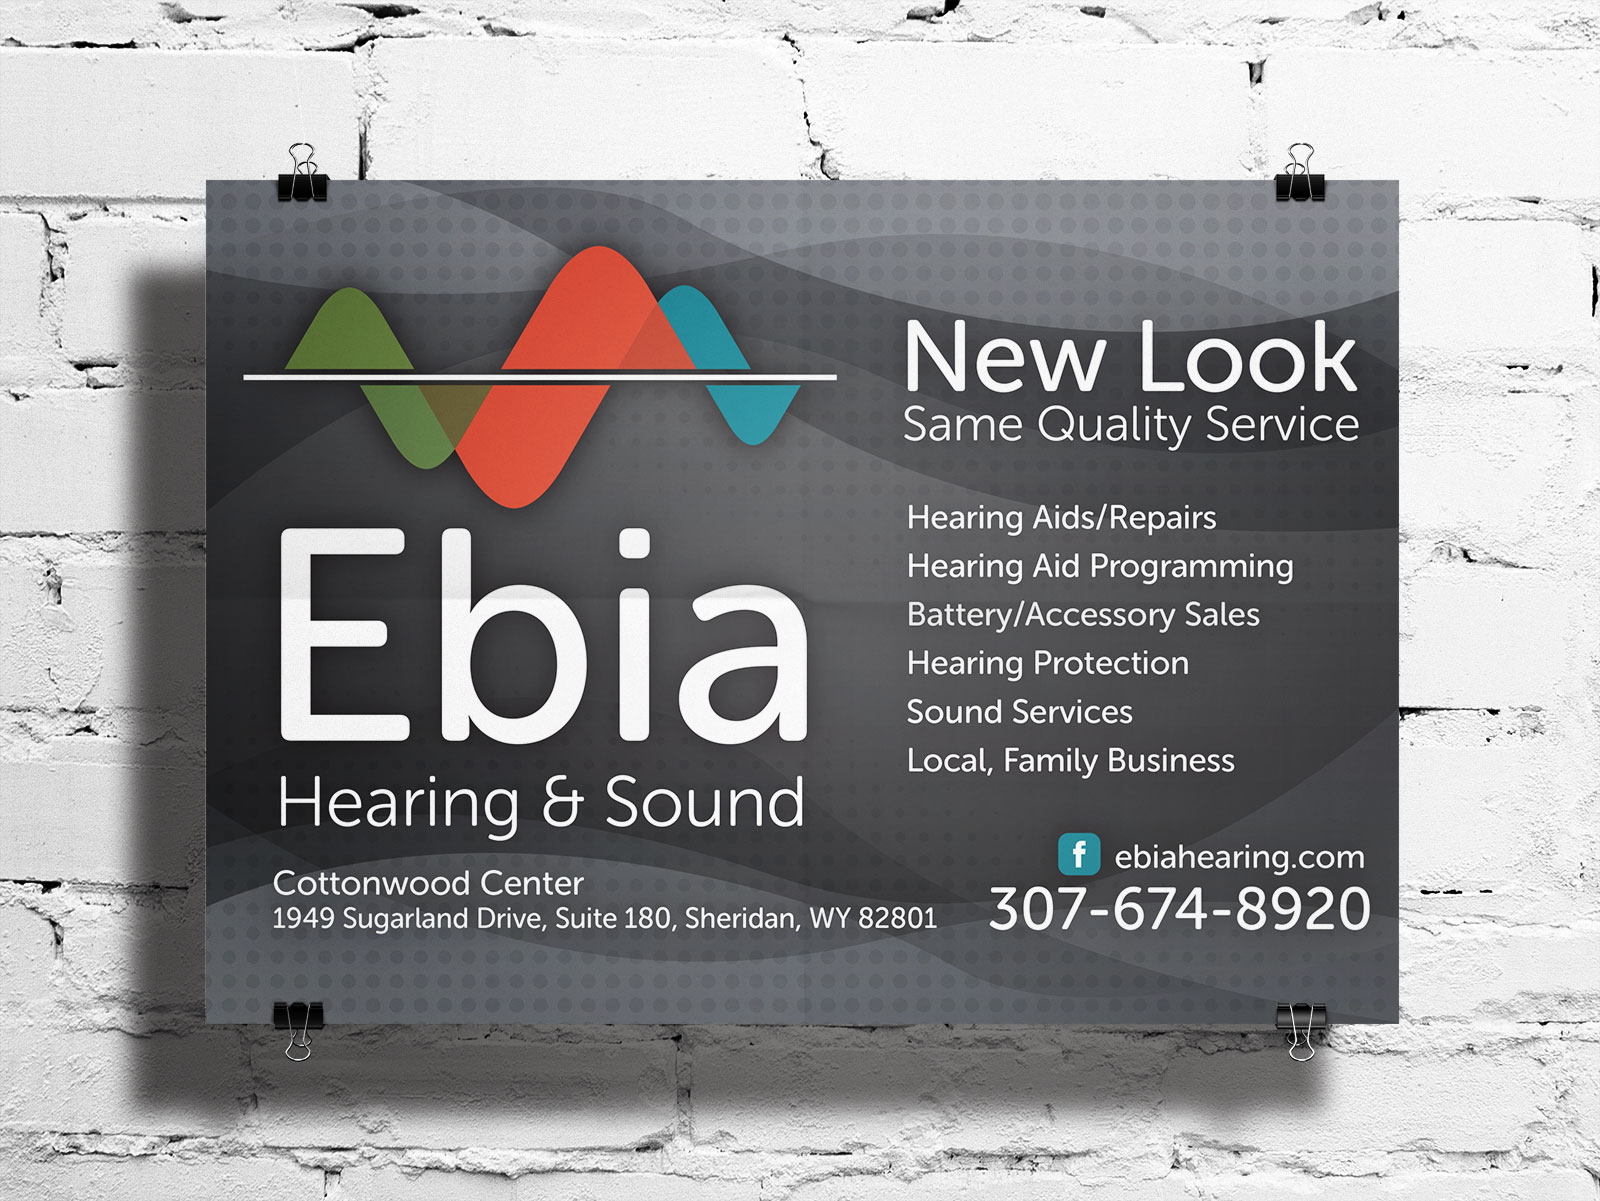 Ebia Hearing and Sound - branding and logo design